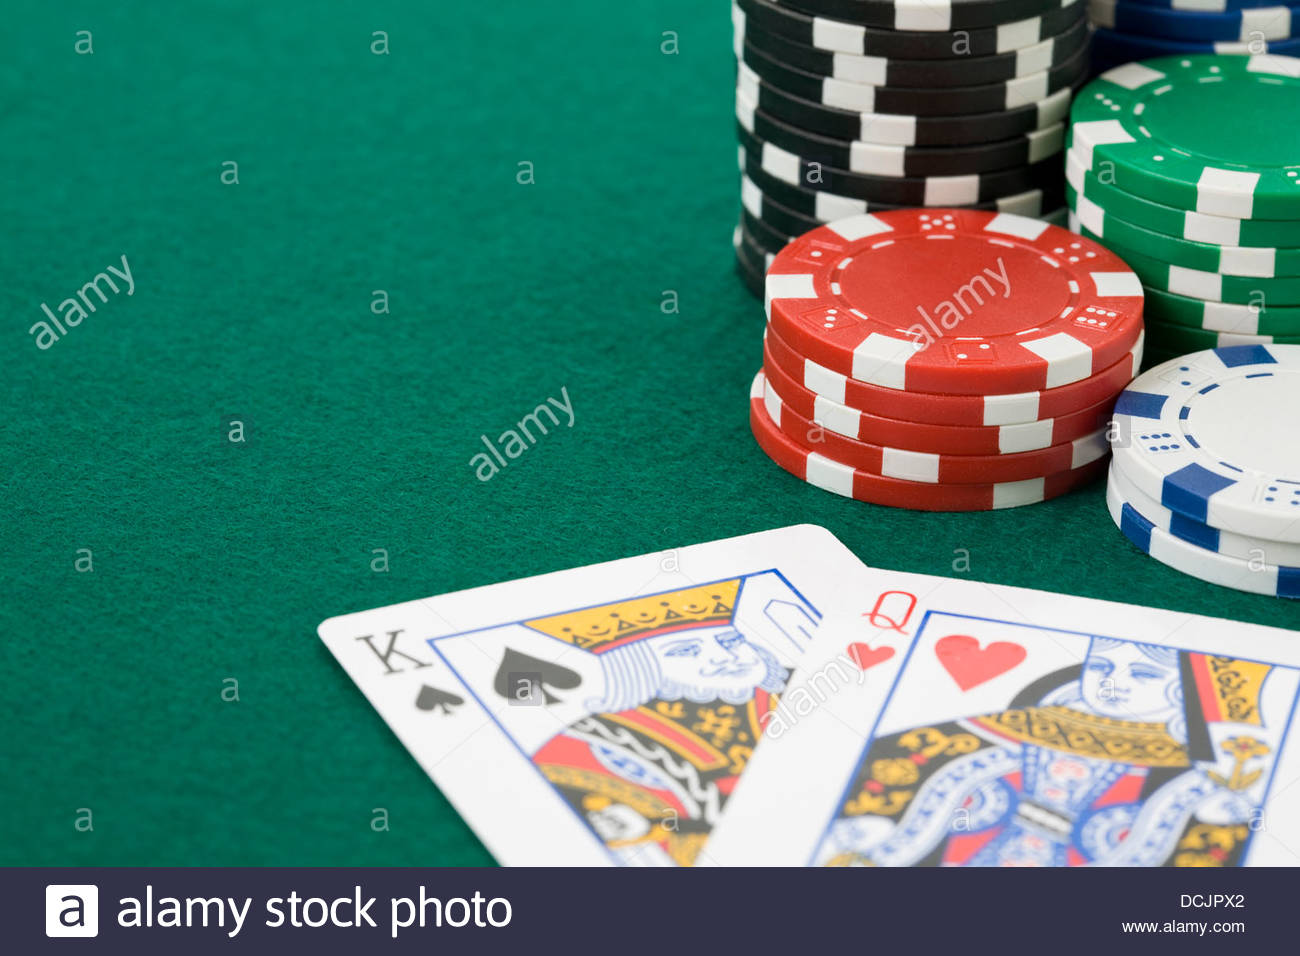 King cards poker chips geant casino paris